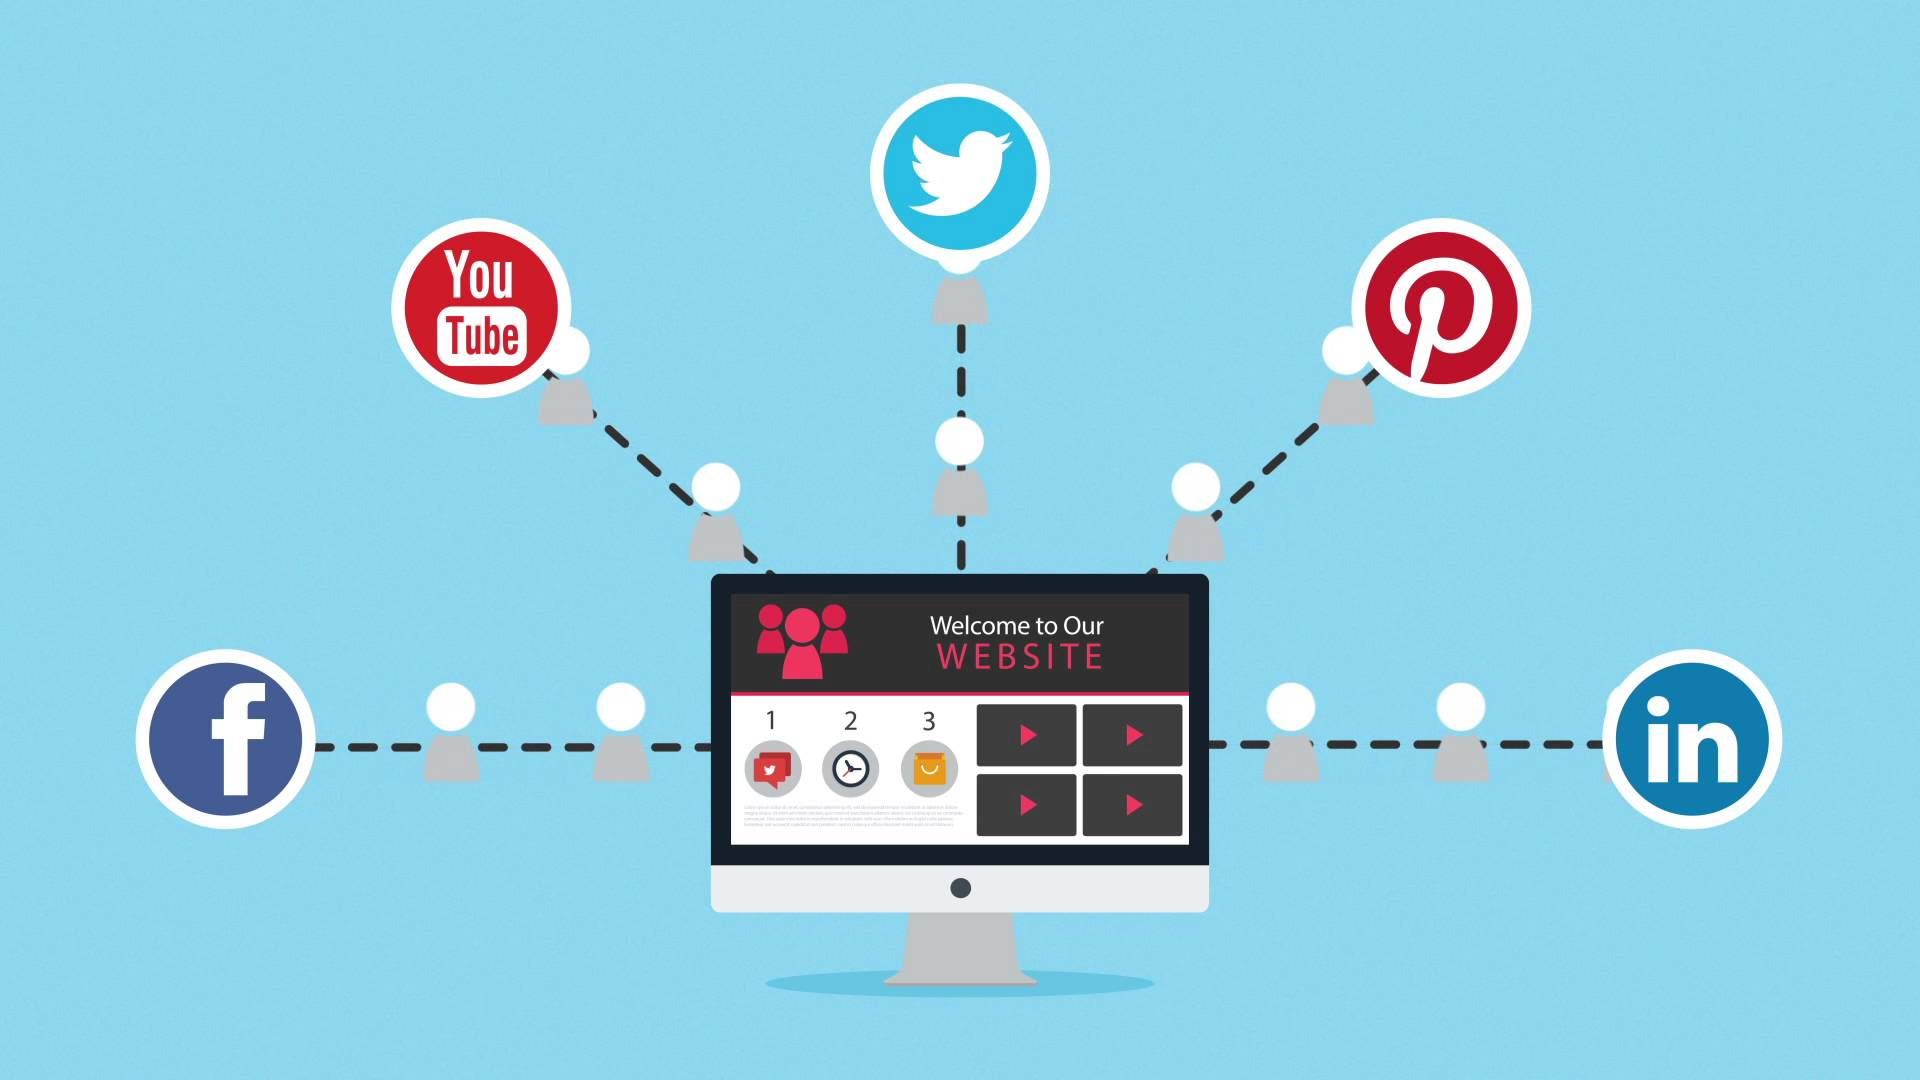 Top 5 Social Media Management Tools To Use In 2018